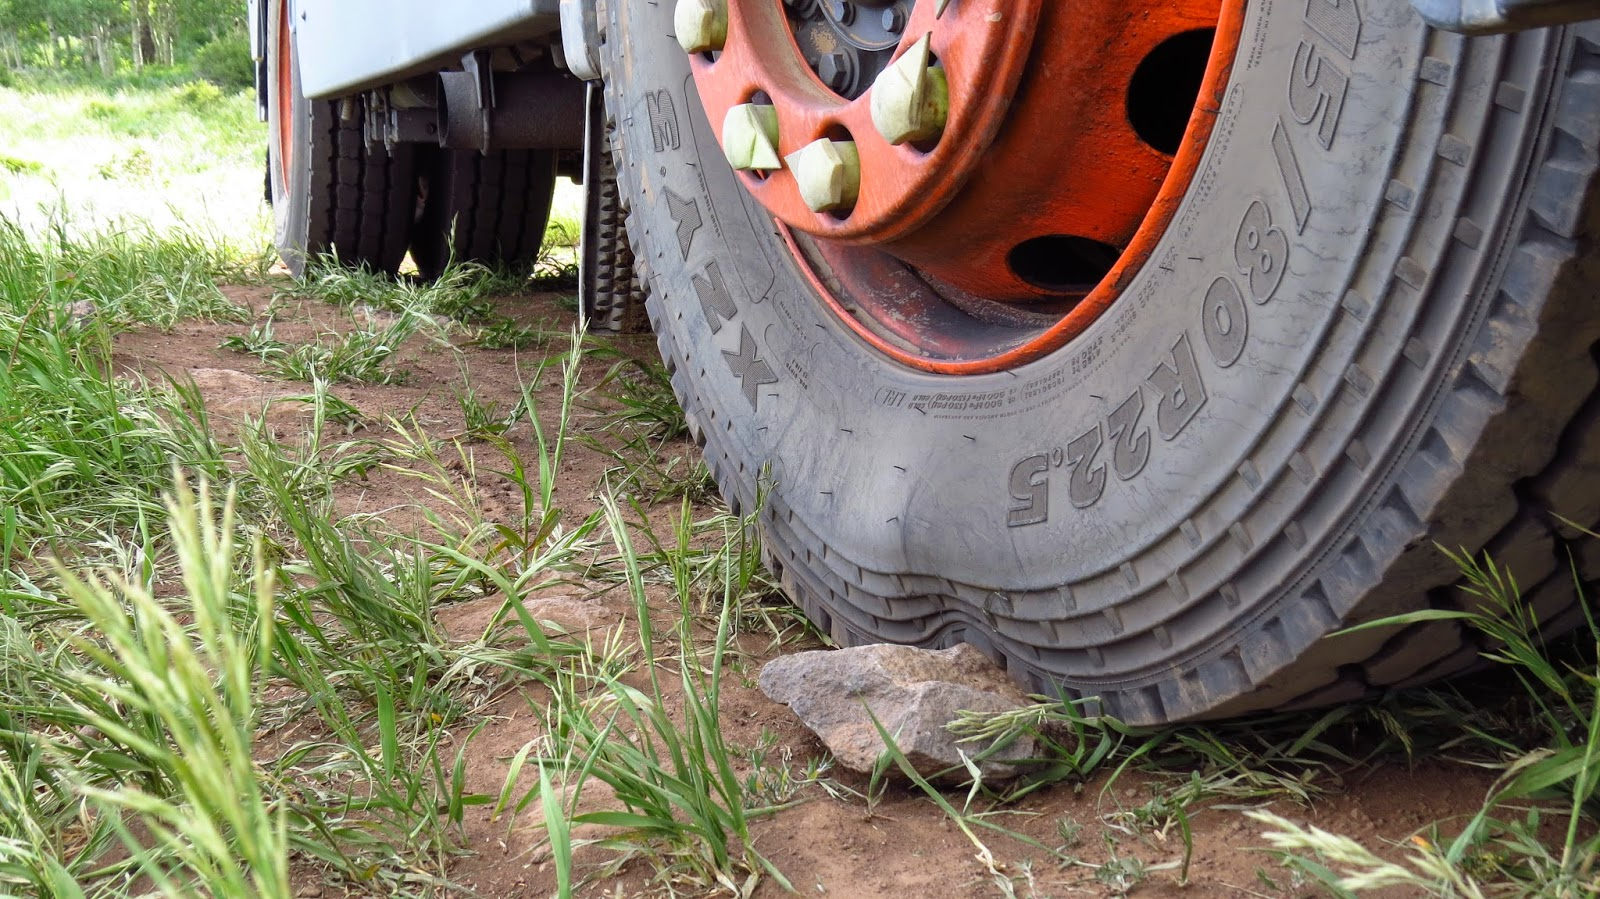 315/80R22.5 Michelin XZY3 tire deforms over a small rock on Jim the overland expedition motorhome